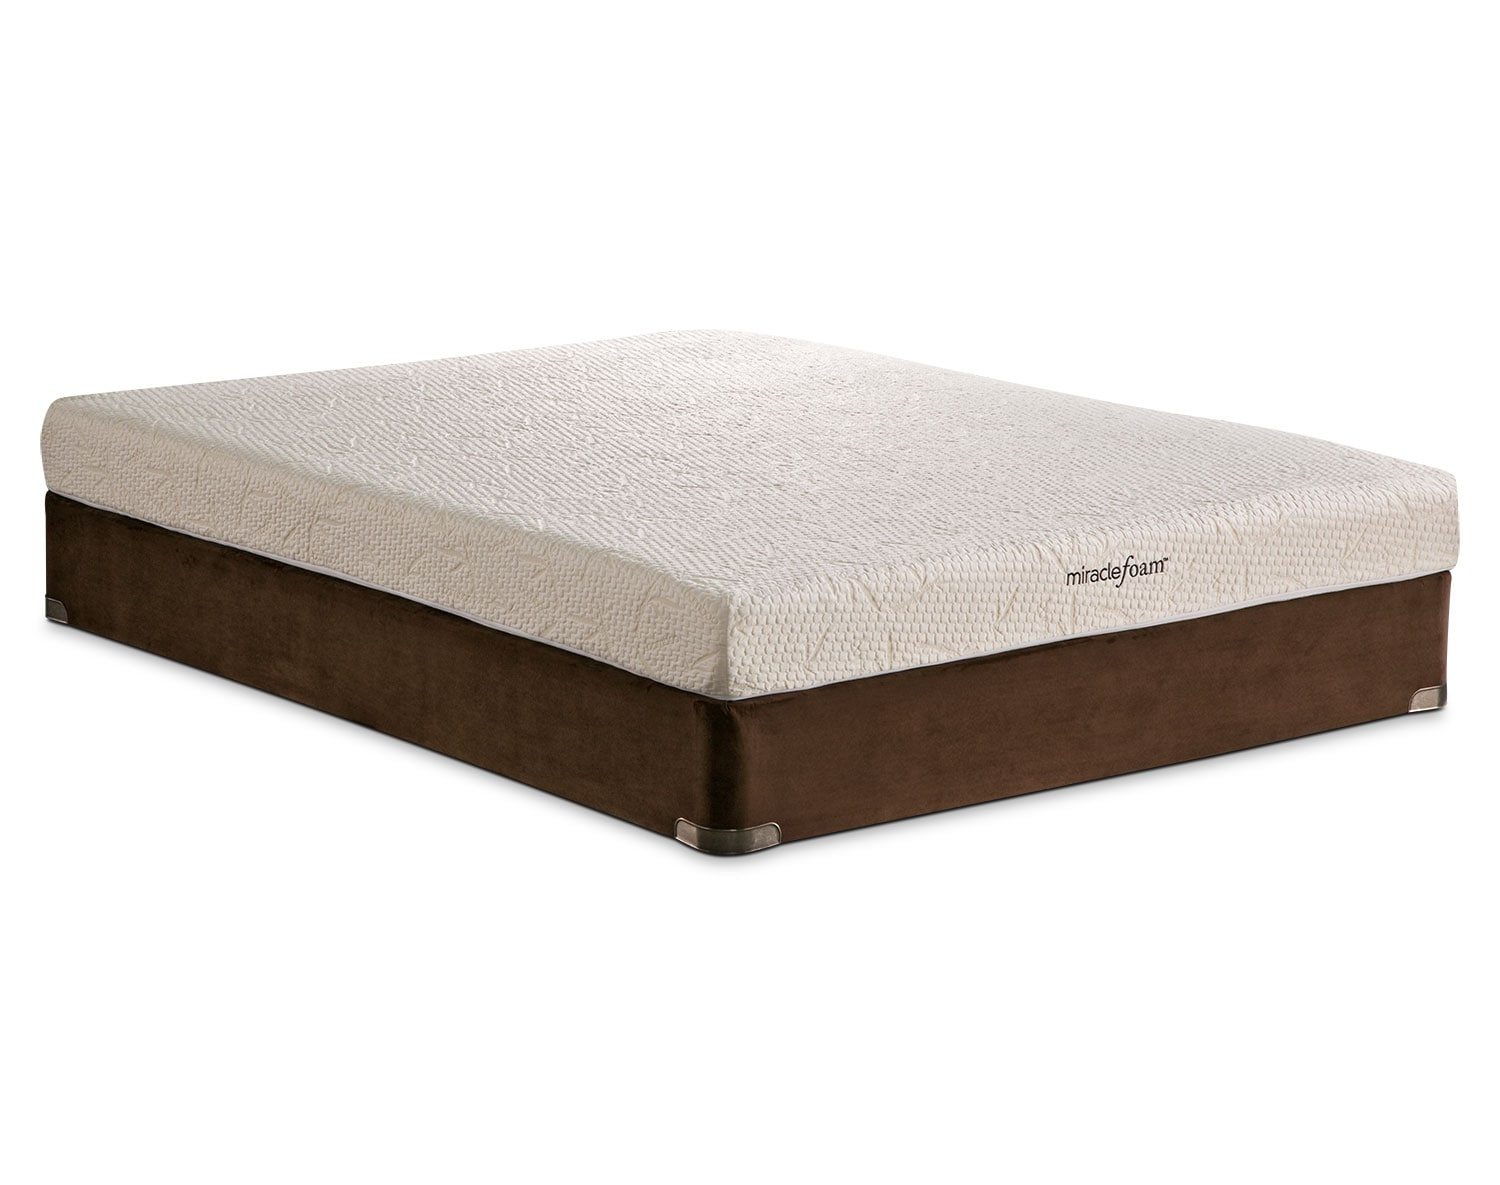 Mattresses and Bedding - The Sunbury Collection - King Mattress